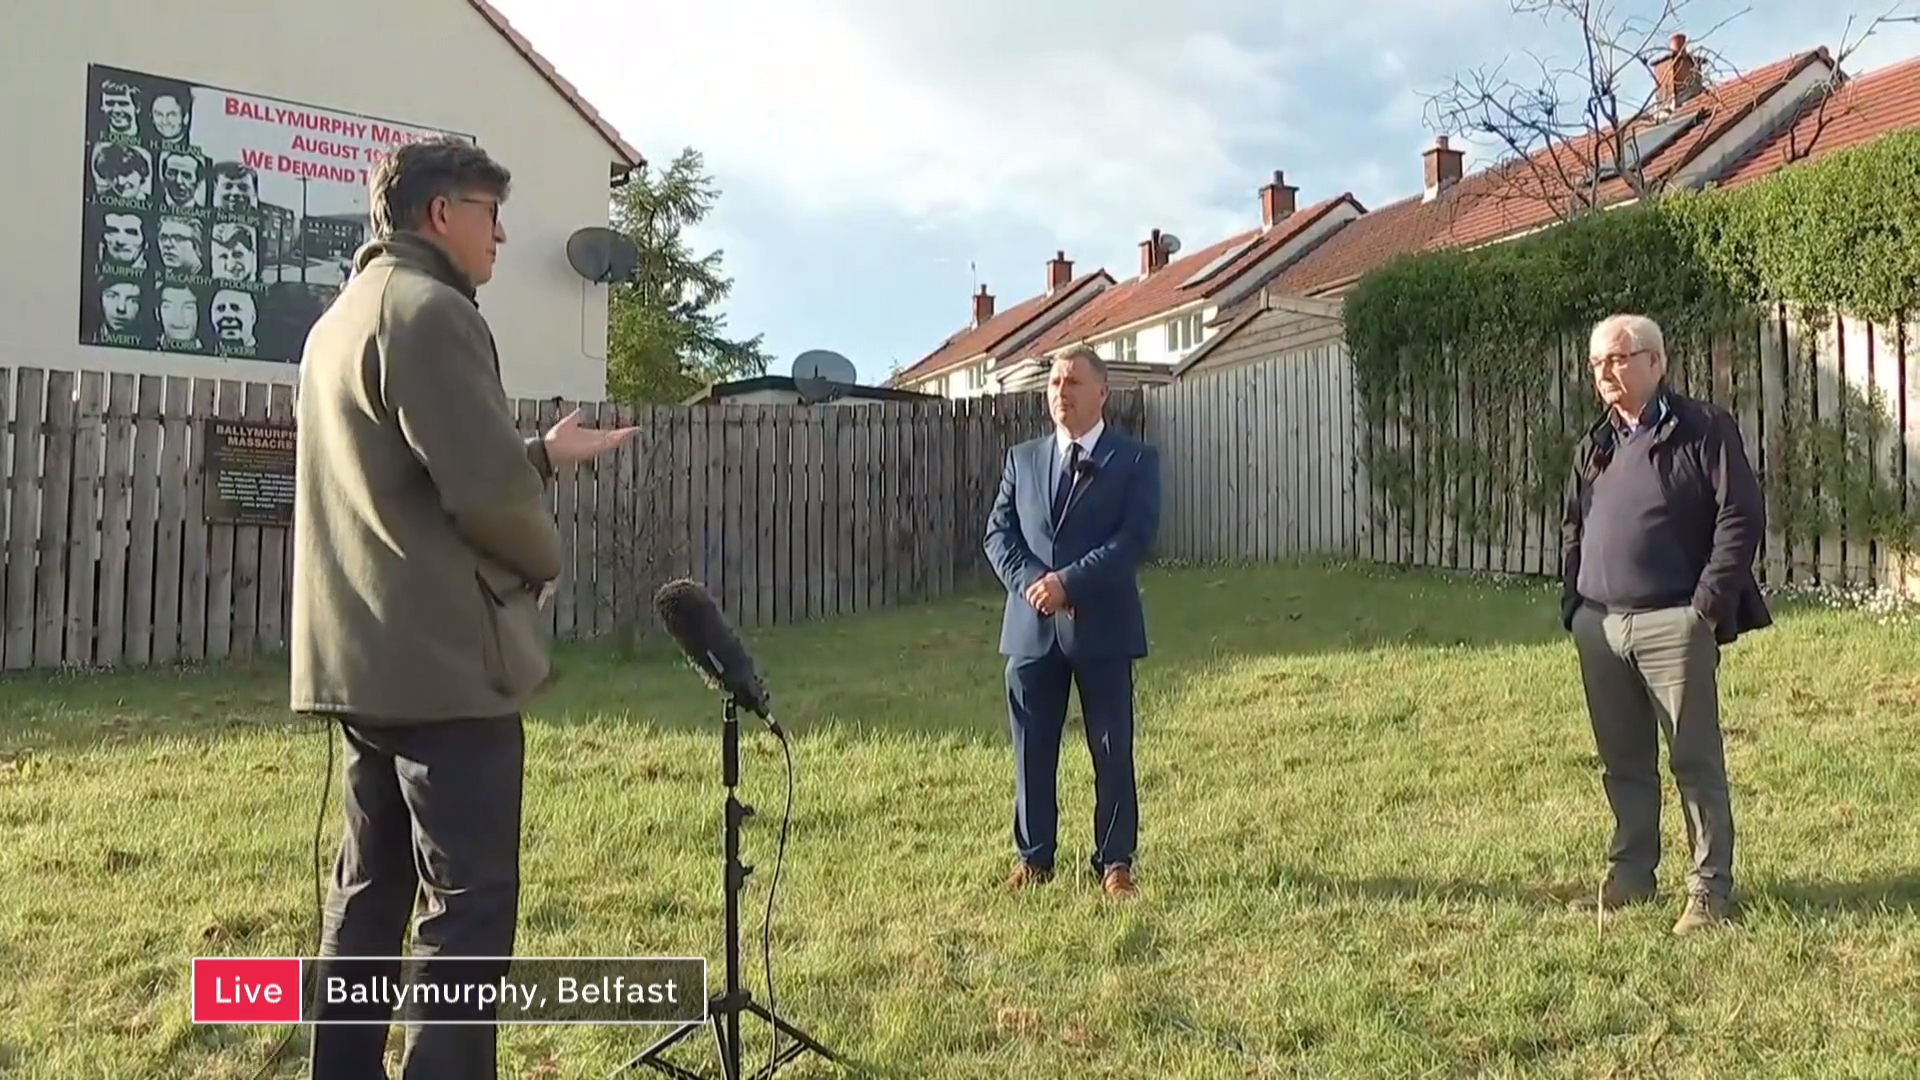 'Today was a landmark, a day for truth and justice' – Ballymurphy families' campaign - channel 4